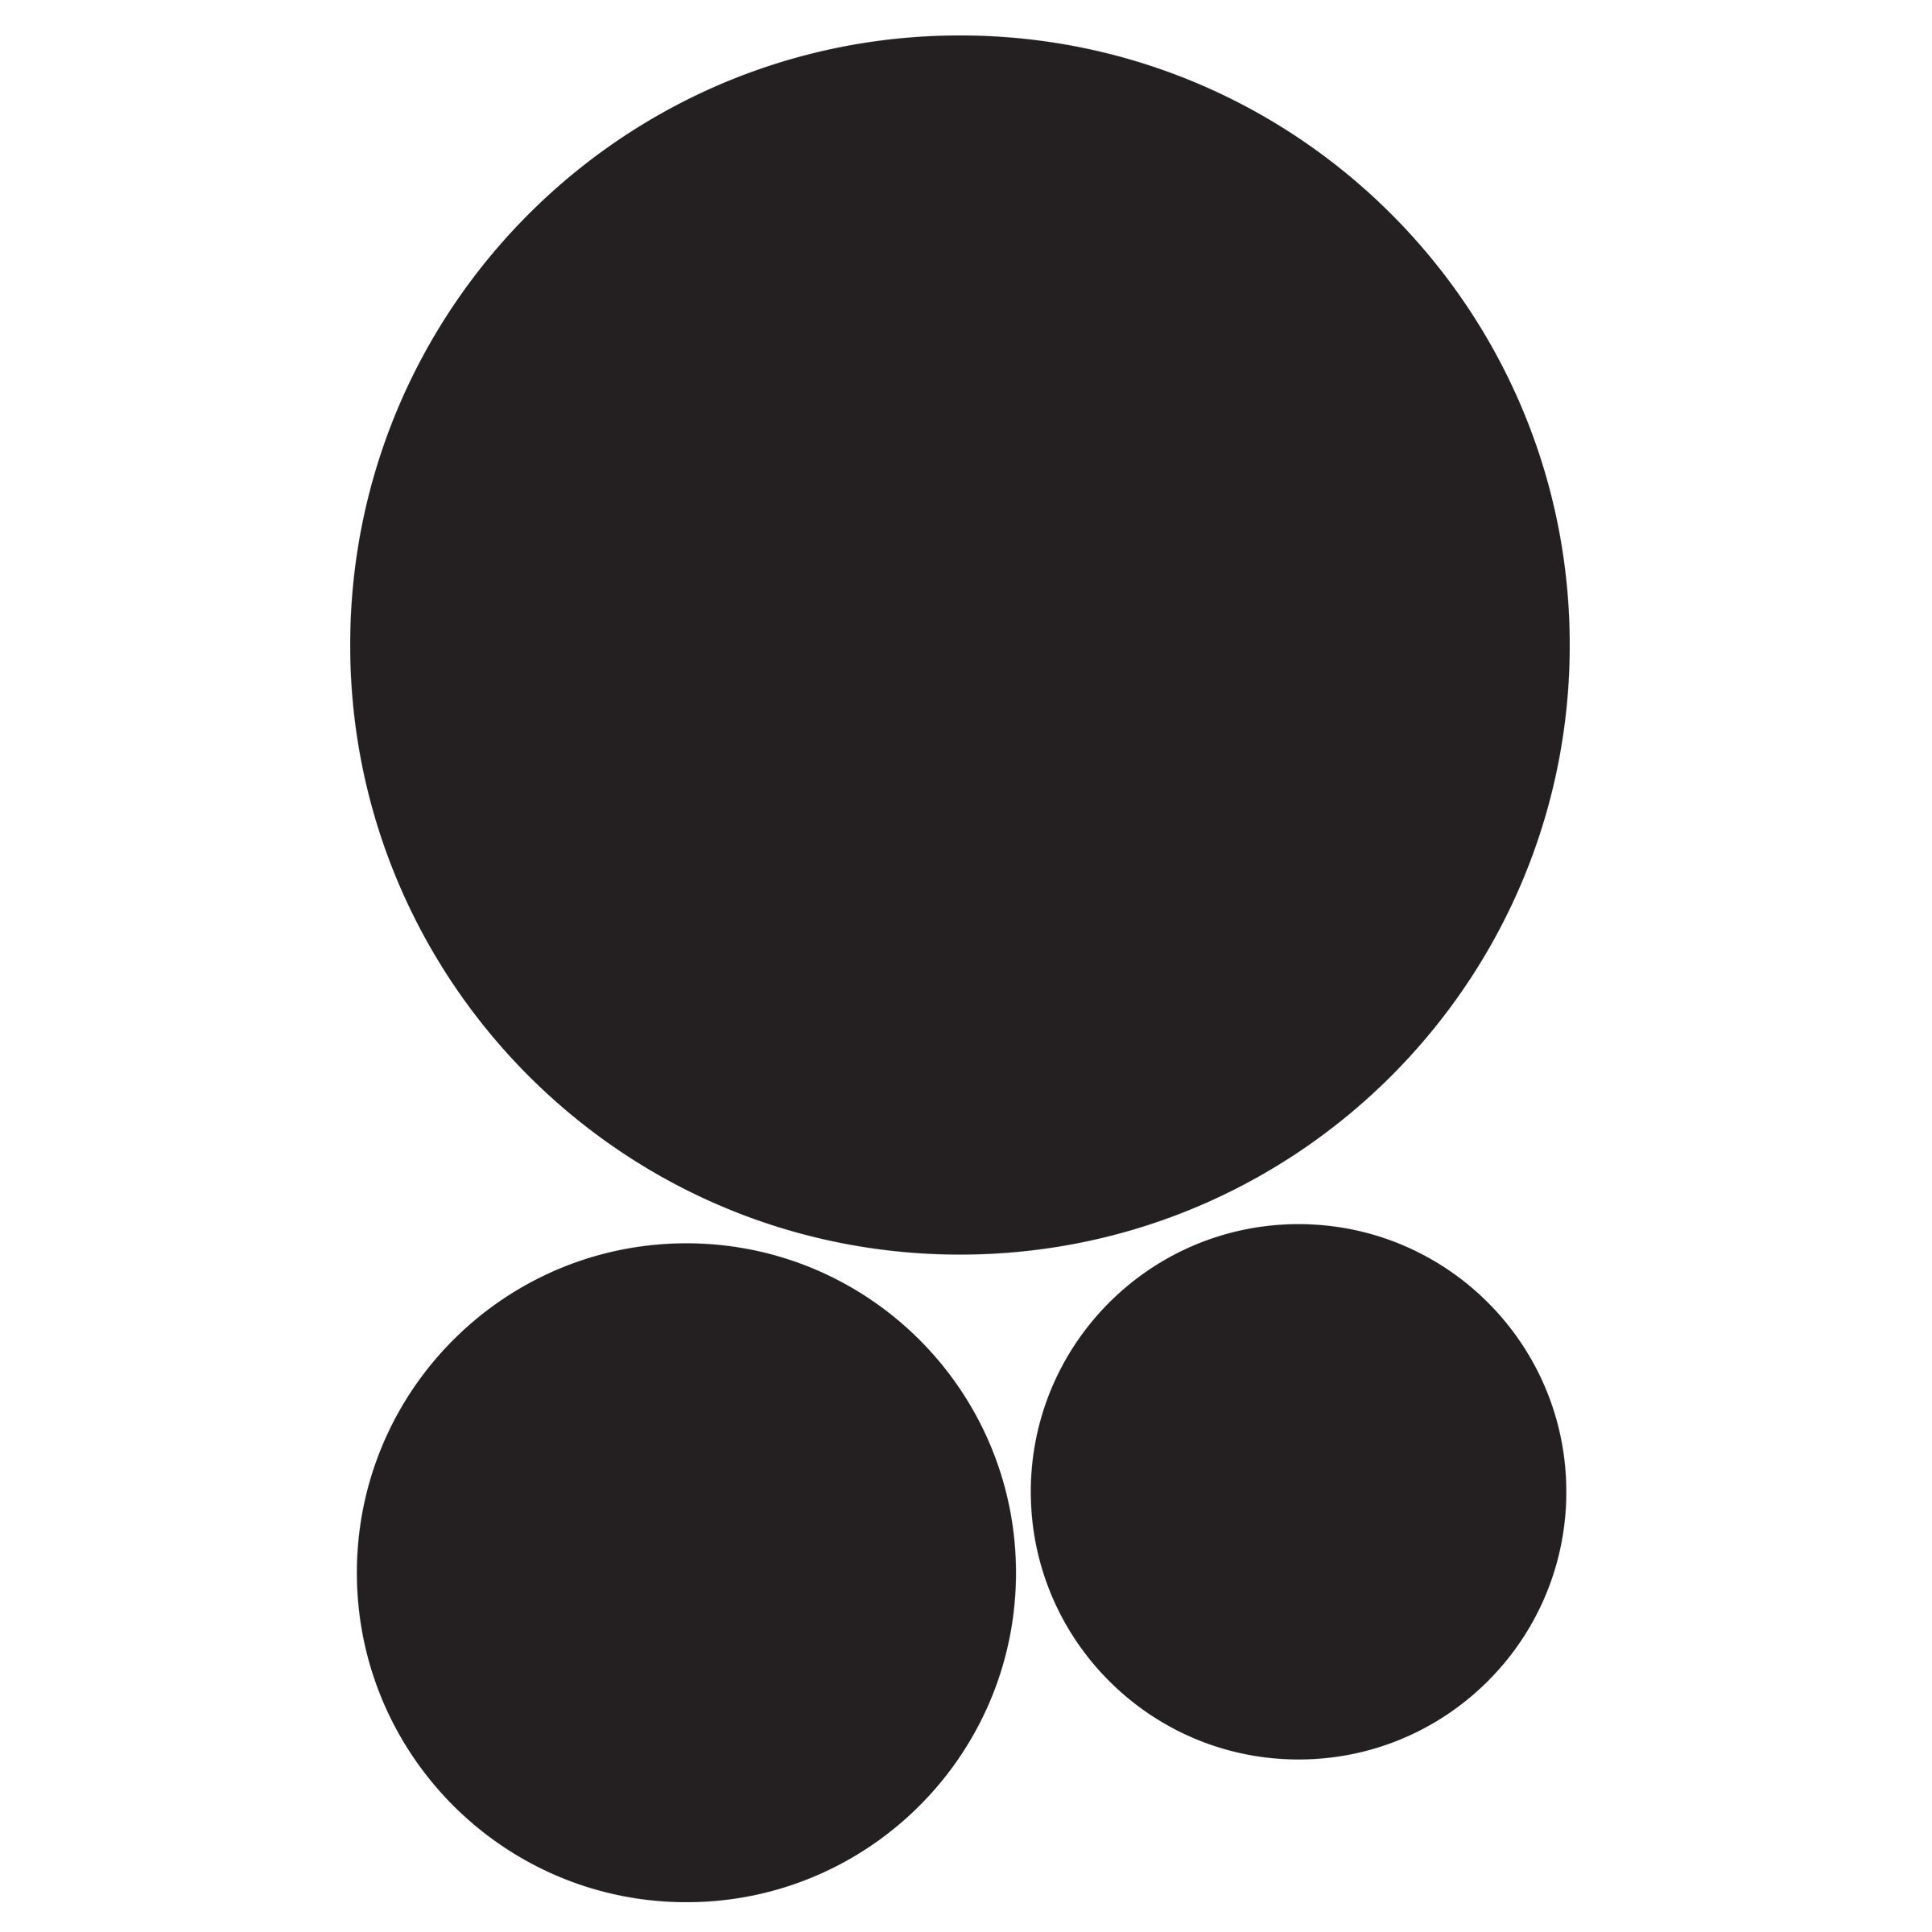 Wallies Peel and Stick Black Circle Chalkboard Wall Decals, Set of 3